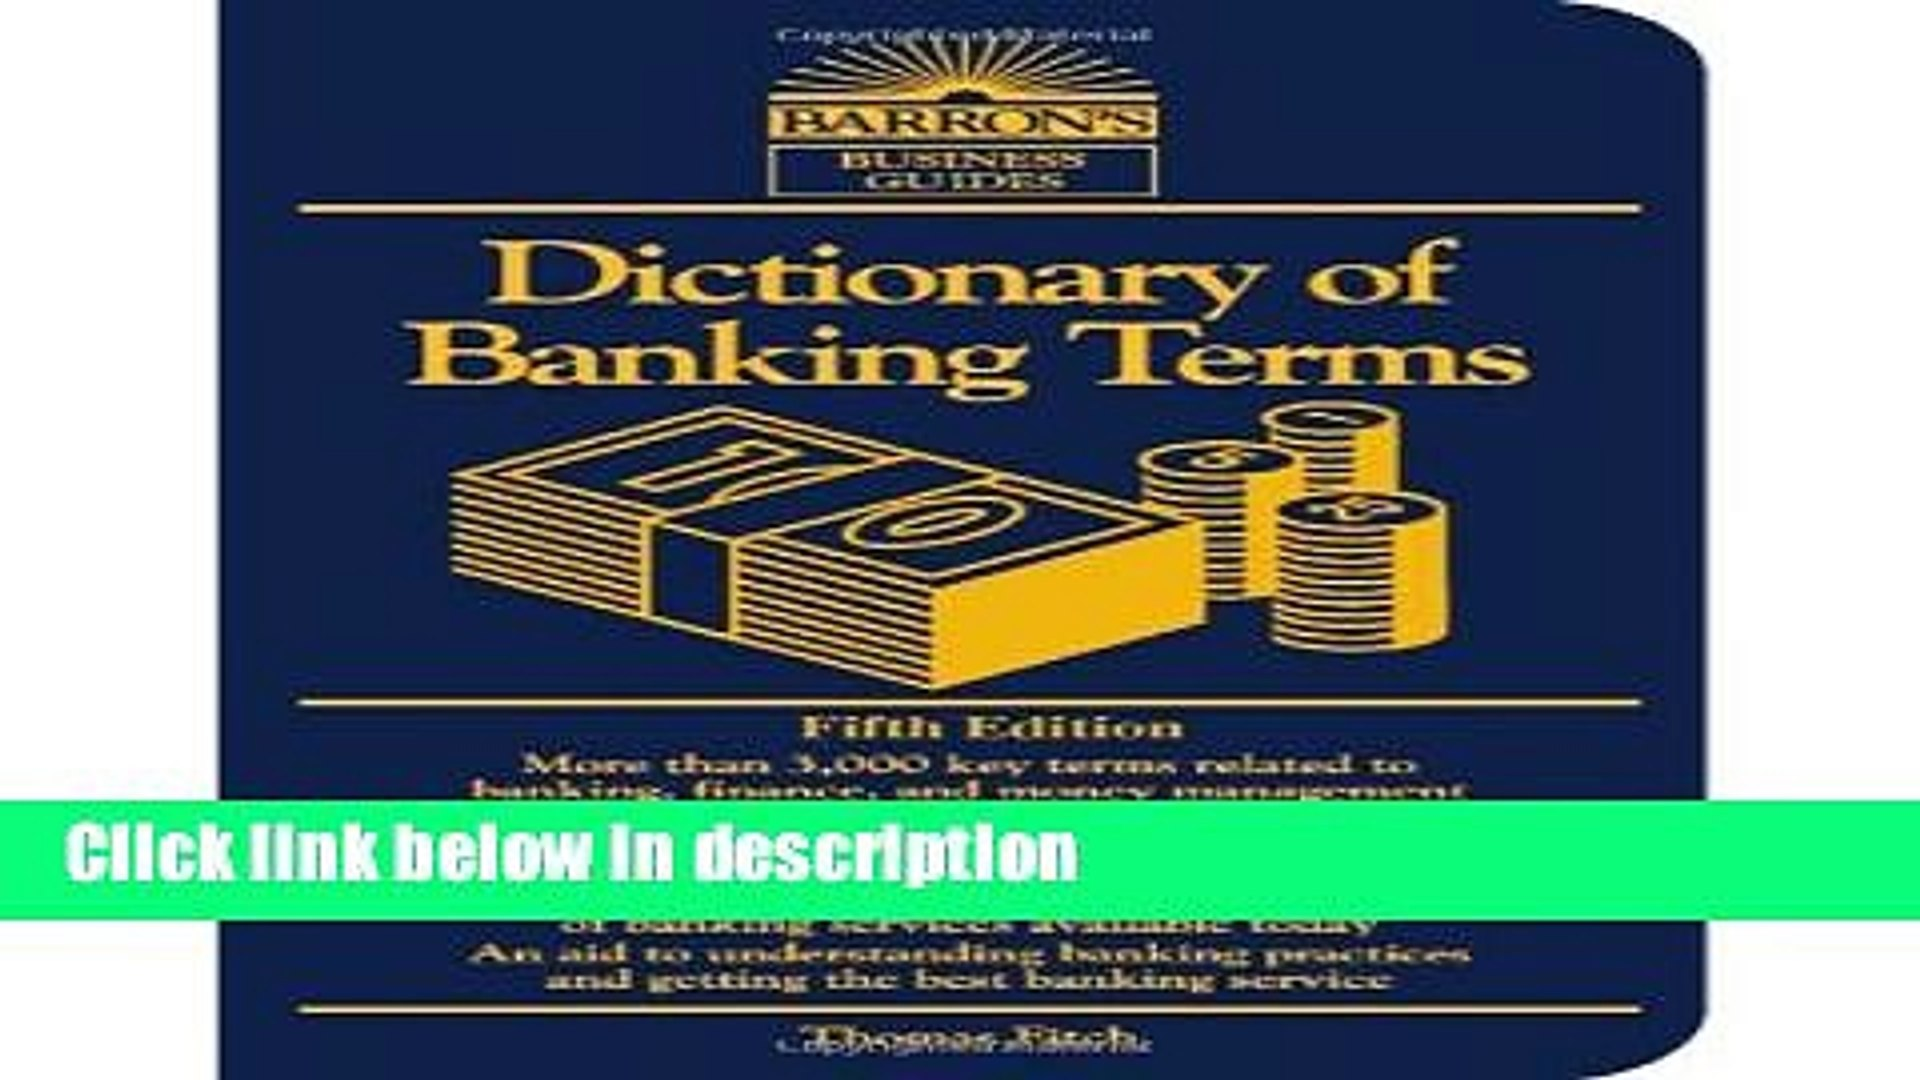 Books Dictionary of Banking Terms (Barron s Business Guides) Free Online